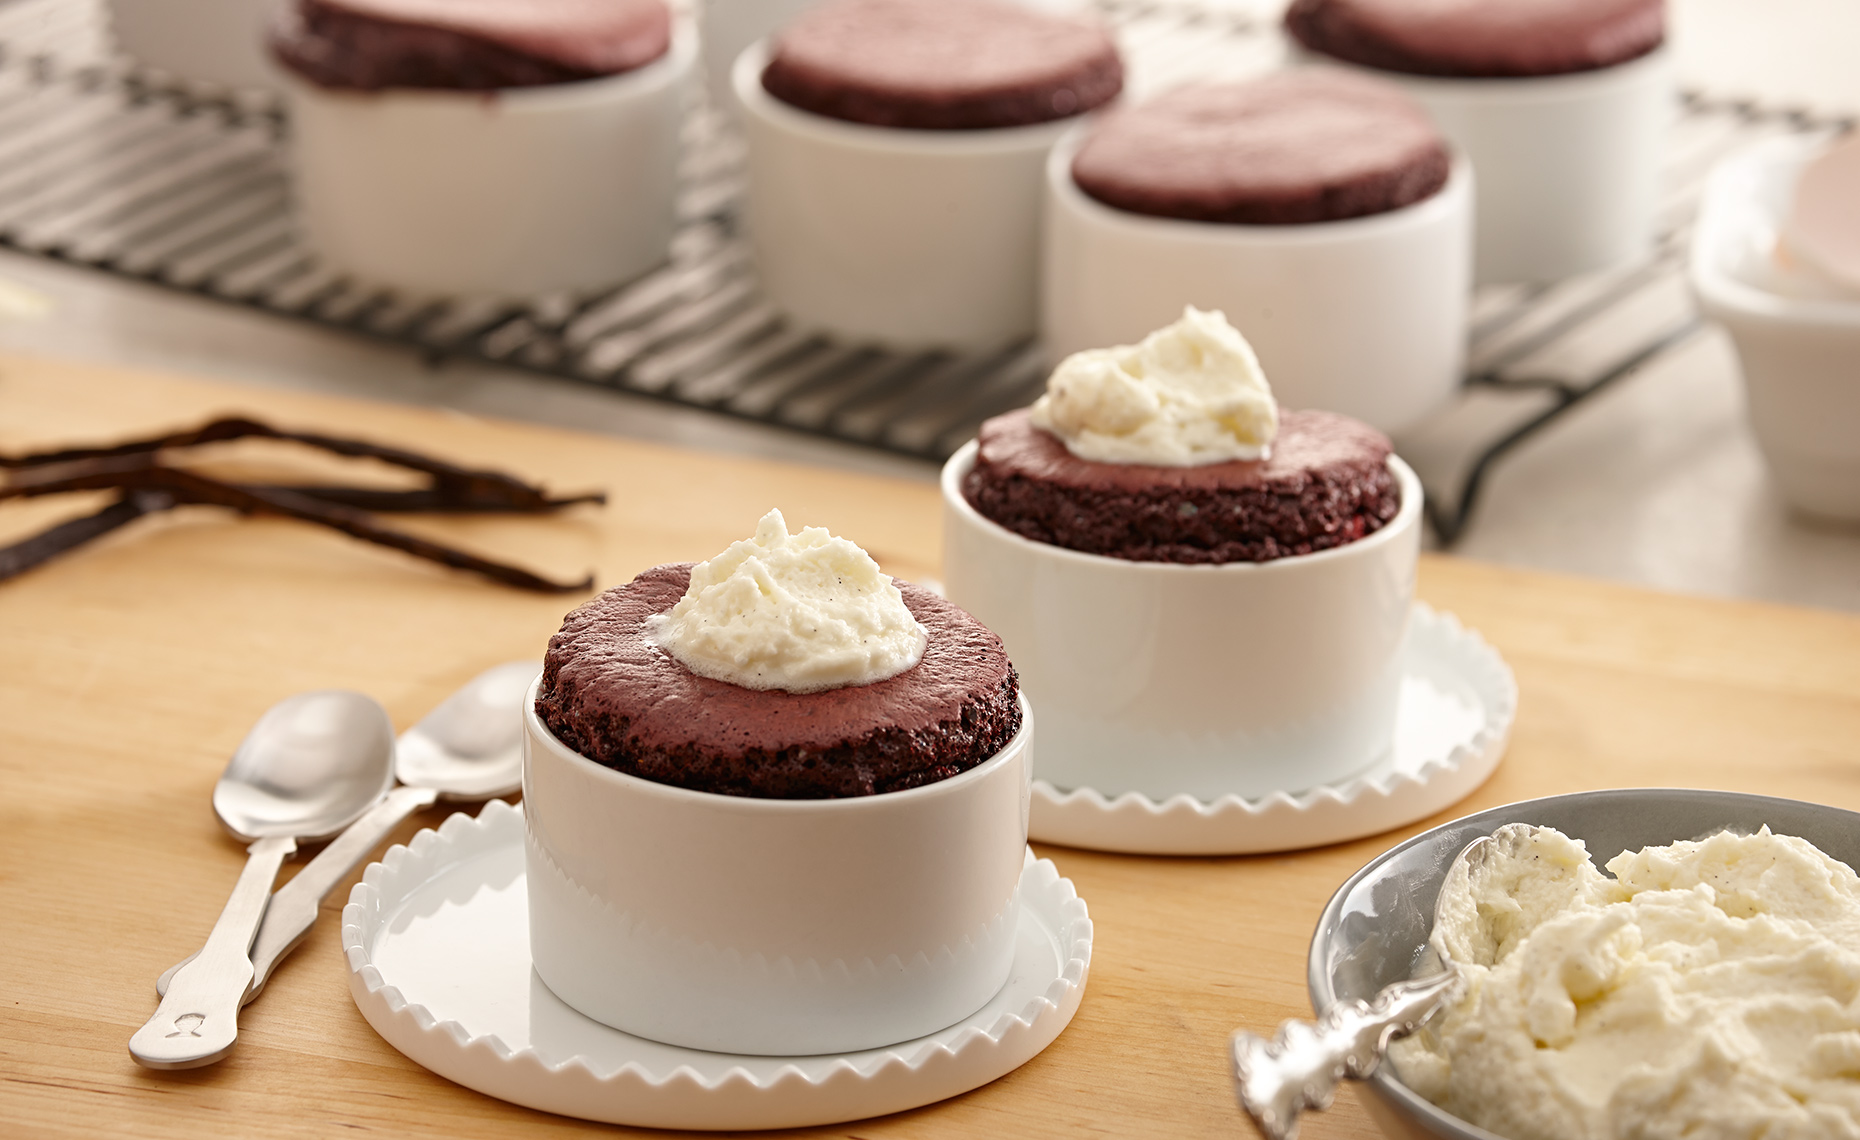 Food Photographer, Cake Photography, Ice Cream Photography, Dessert Photography | Pohuski Studios,  Red Velvet Souffle